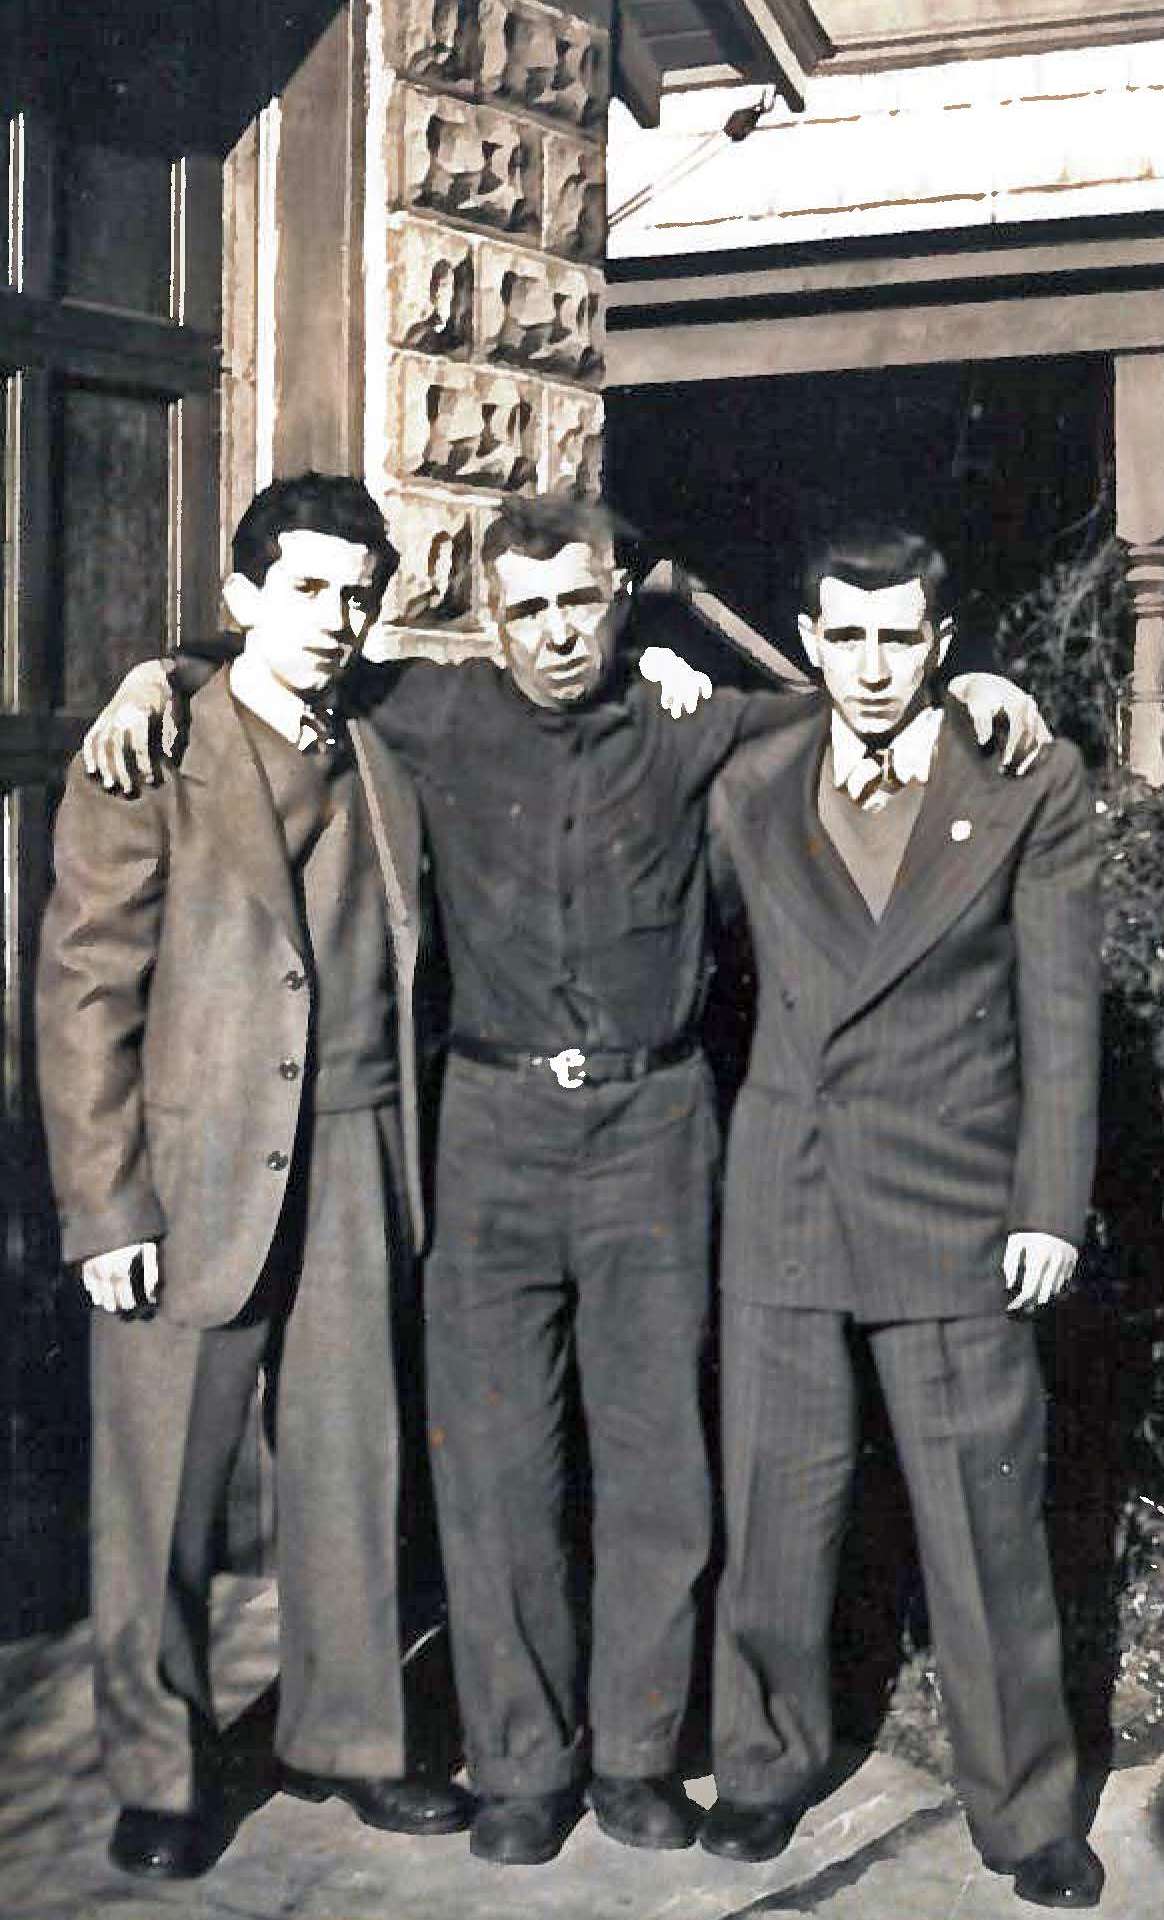 Antonio DiNauta, an Italian immigrant to the United States, and his two sons, John and Leonard, born in the US.